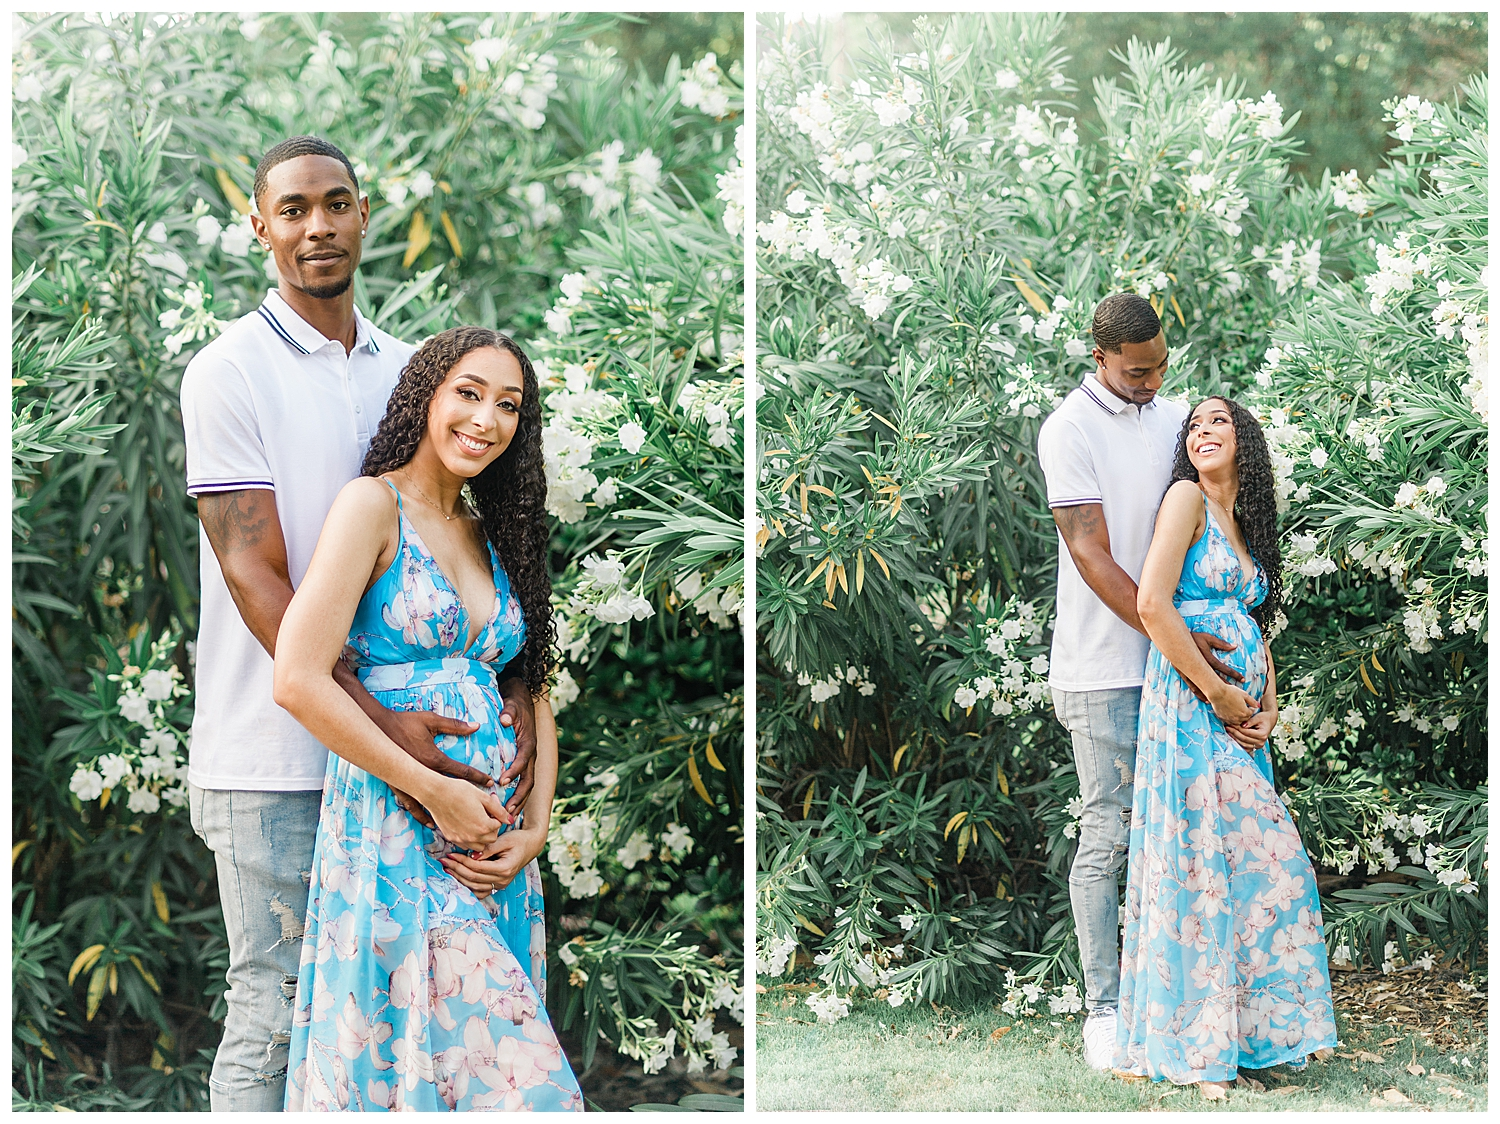 Maternity Session at Washington Park